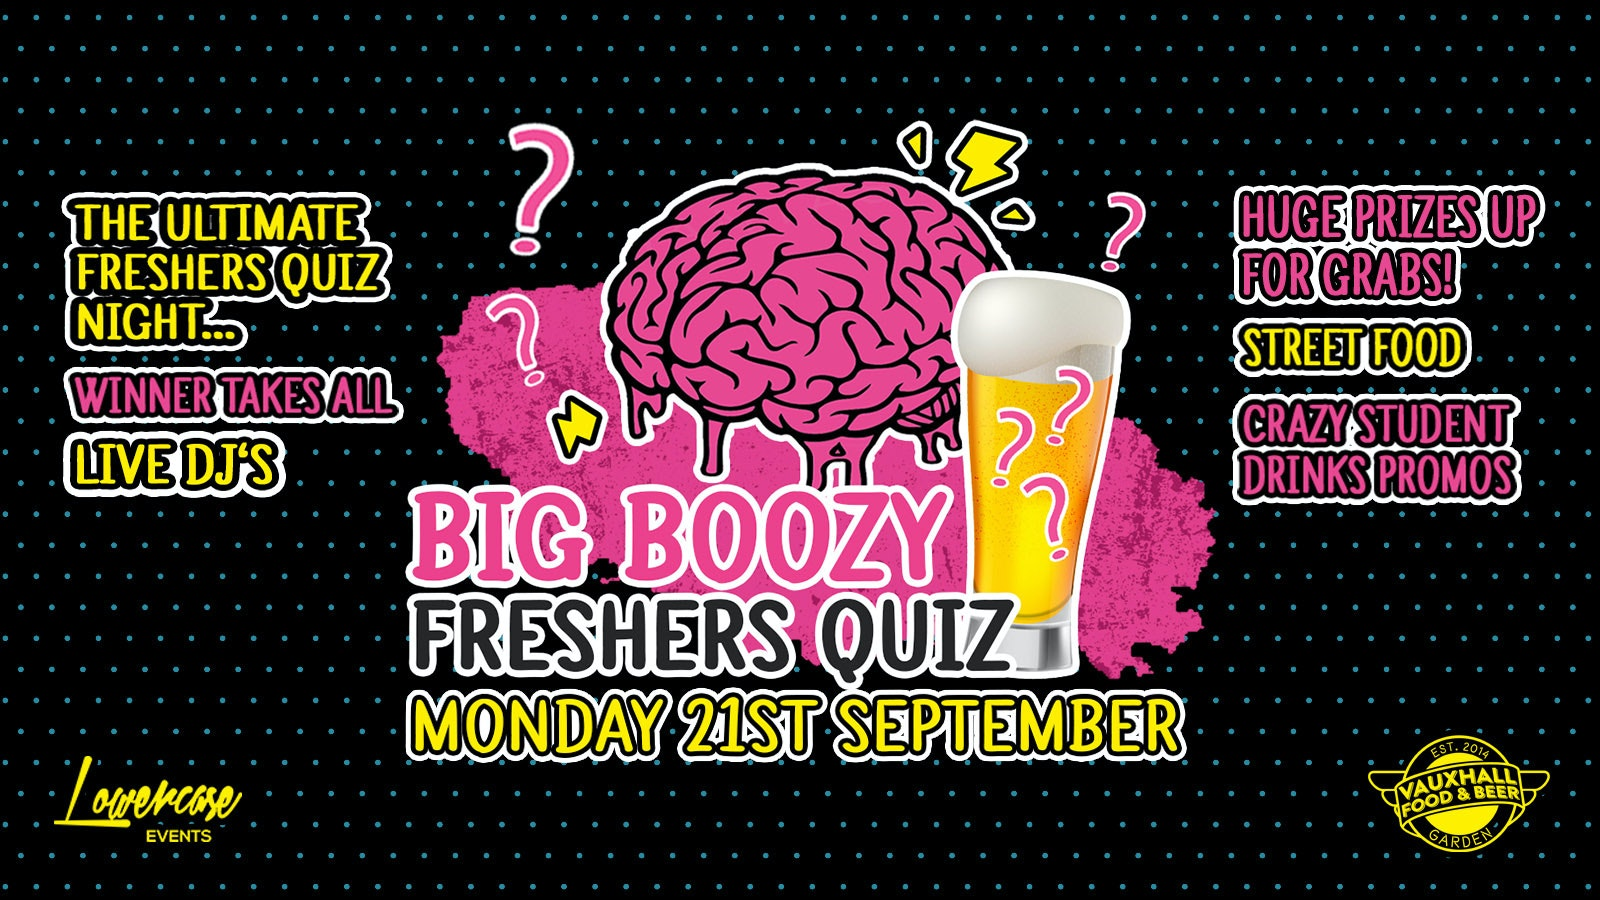 The Socially Distanced Big Boozy Freshers Quiz @ Vauxhall Food & Beer Garden // ONLY 200 TICKETS AVAILABLE!!